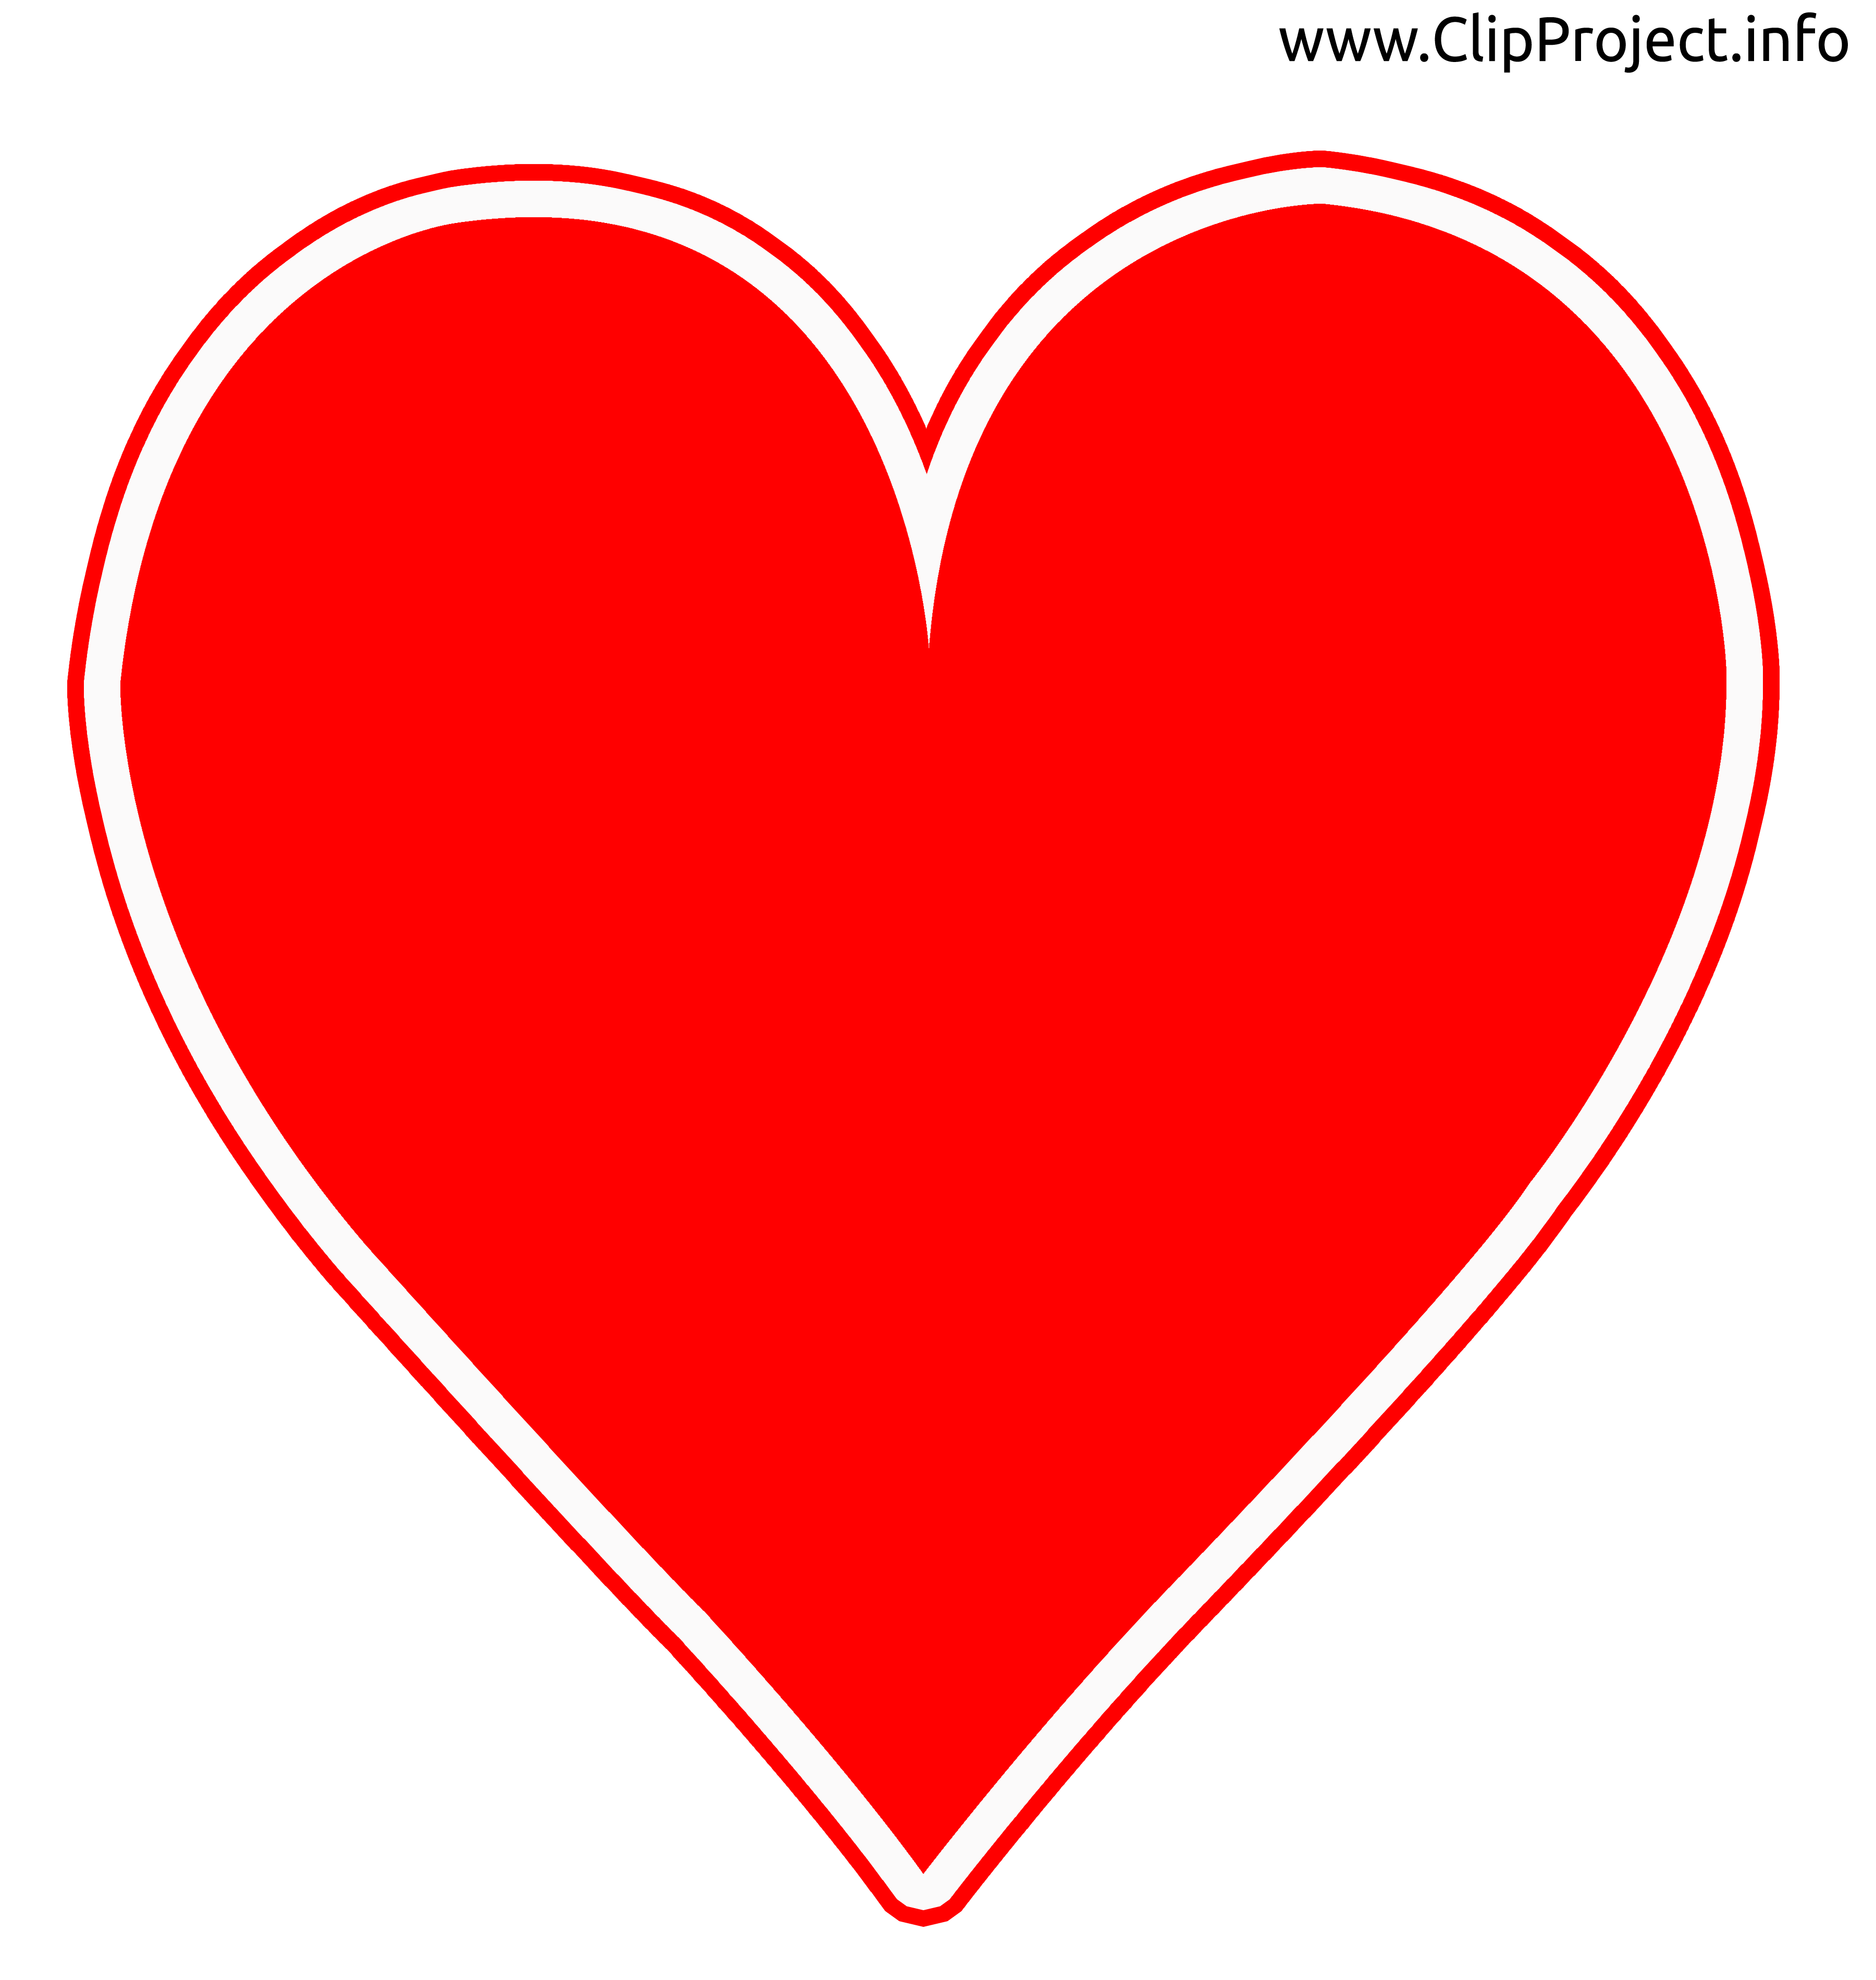 Coeur image clipart png free stock Clipart coeur 7 » Clipart Station png free stock